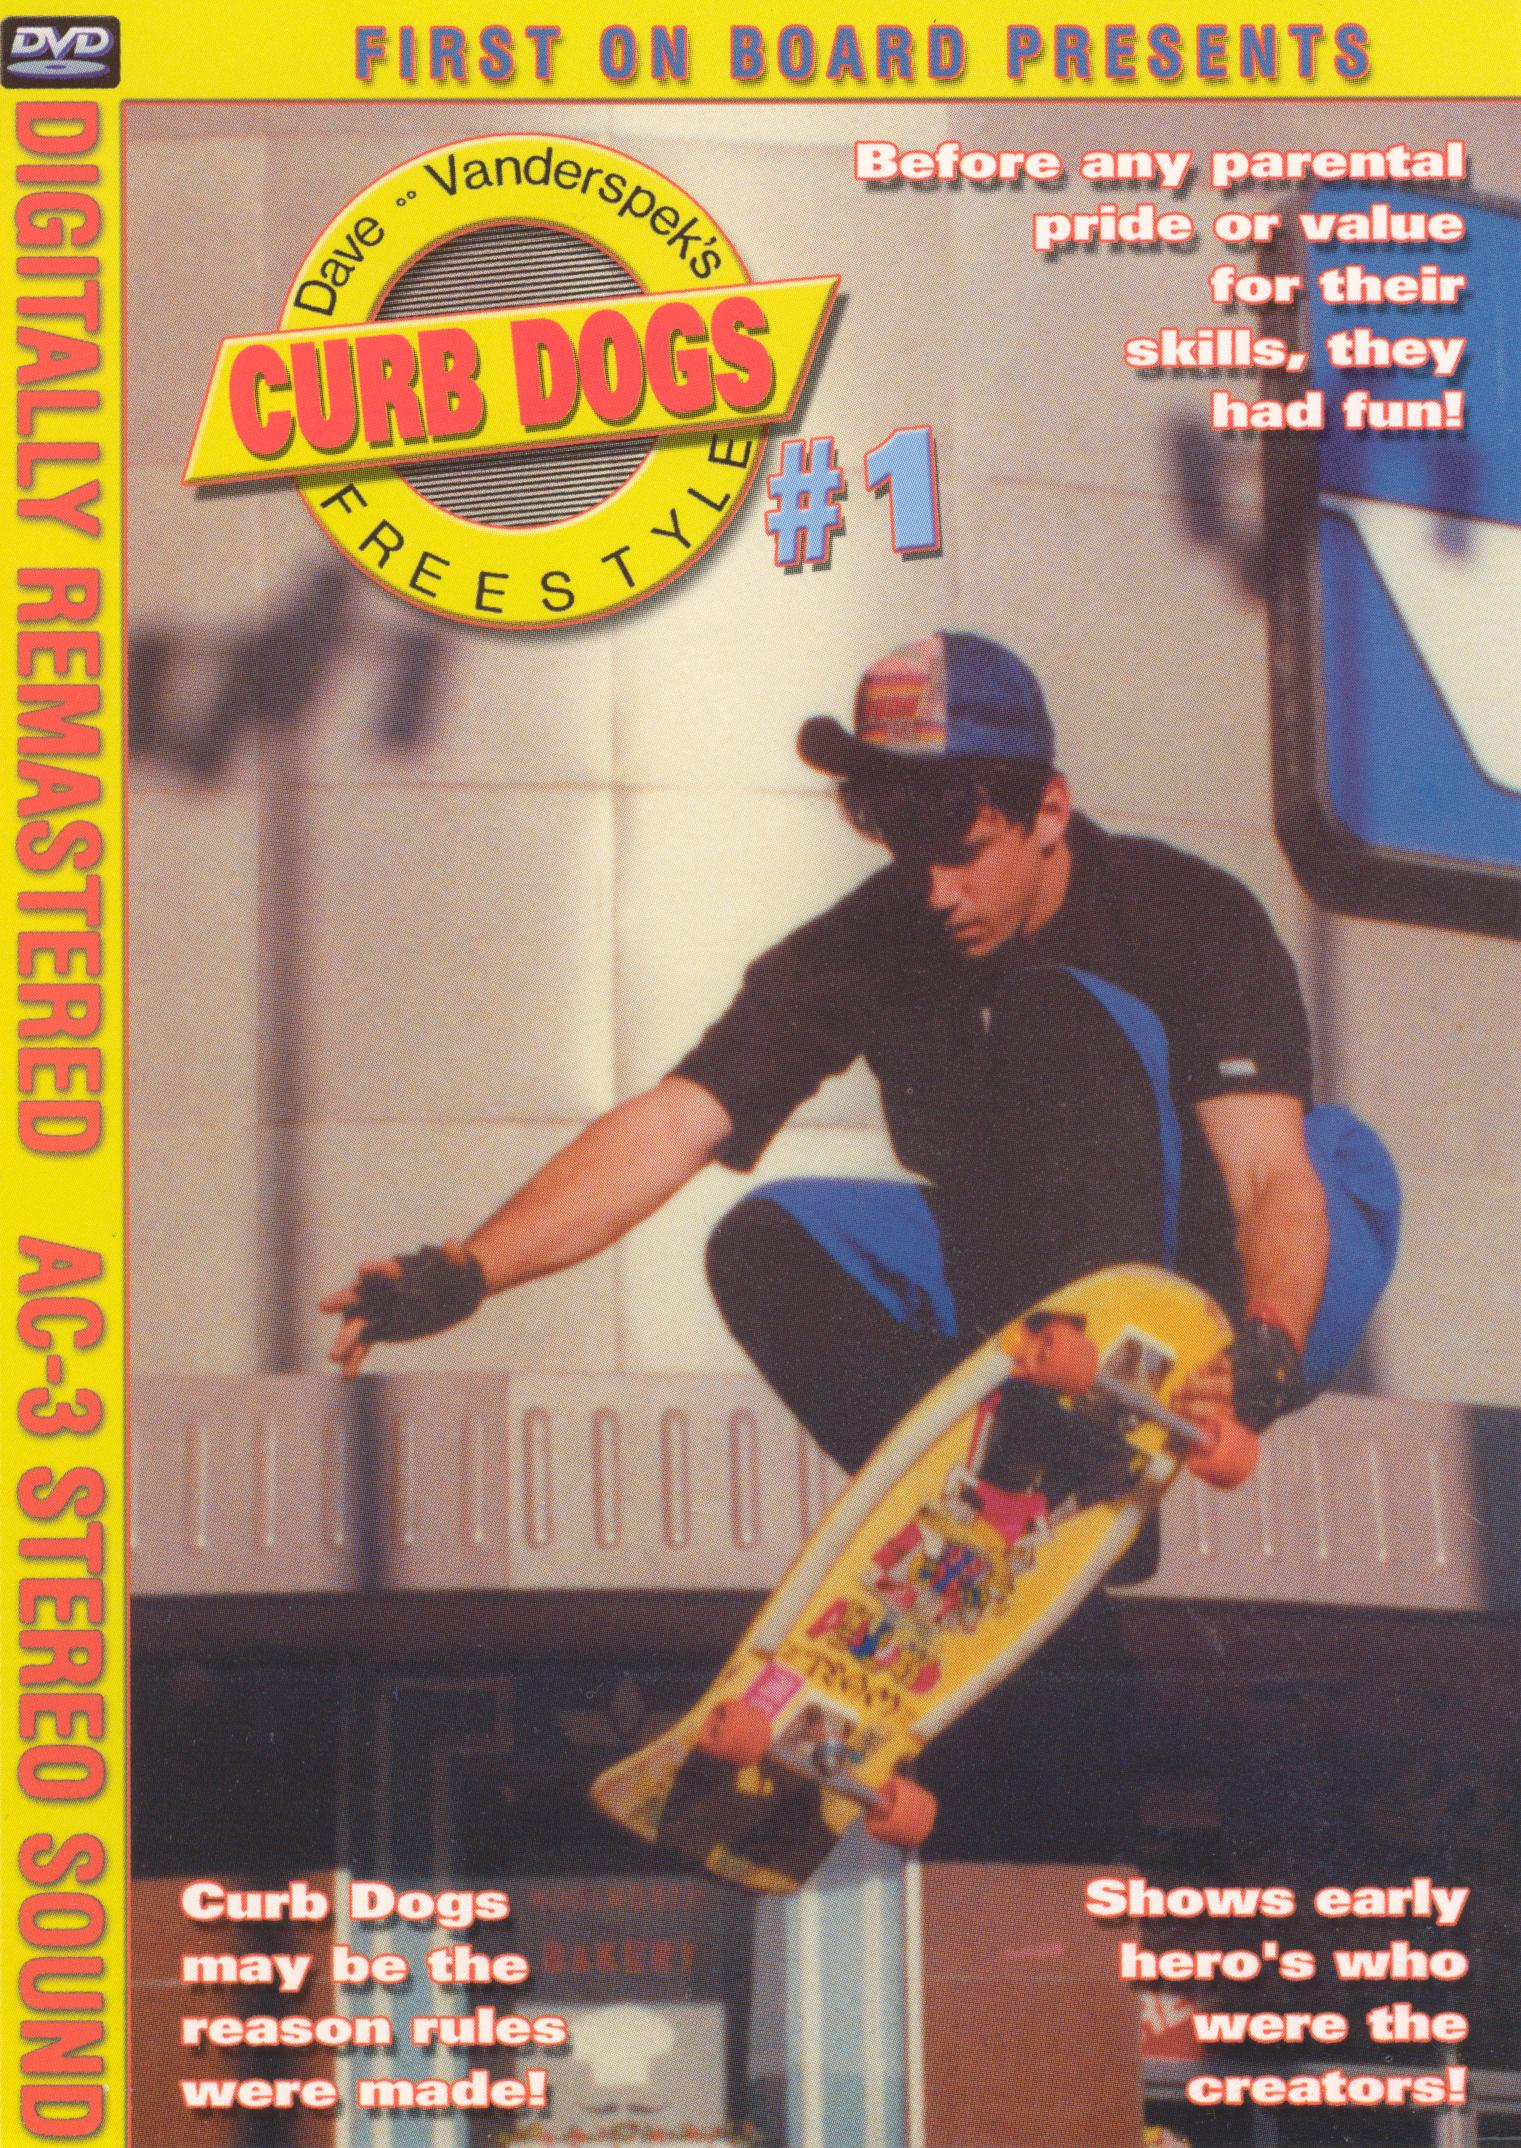 Curb Dogs Freestyle, Vol. 1 (2002)